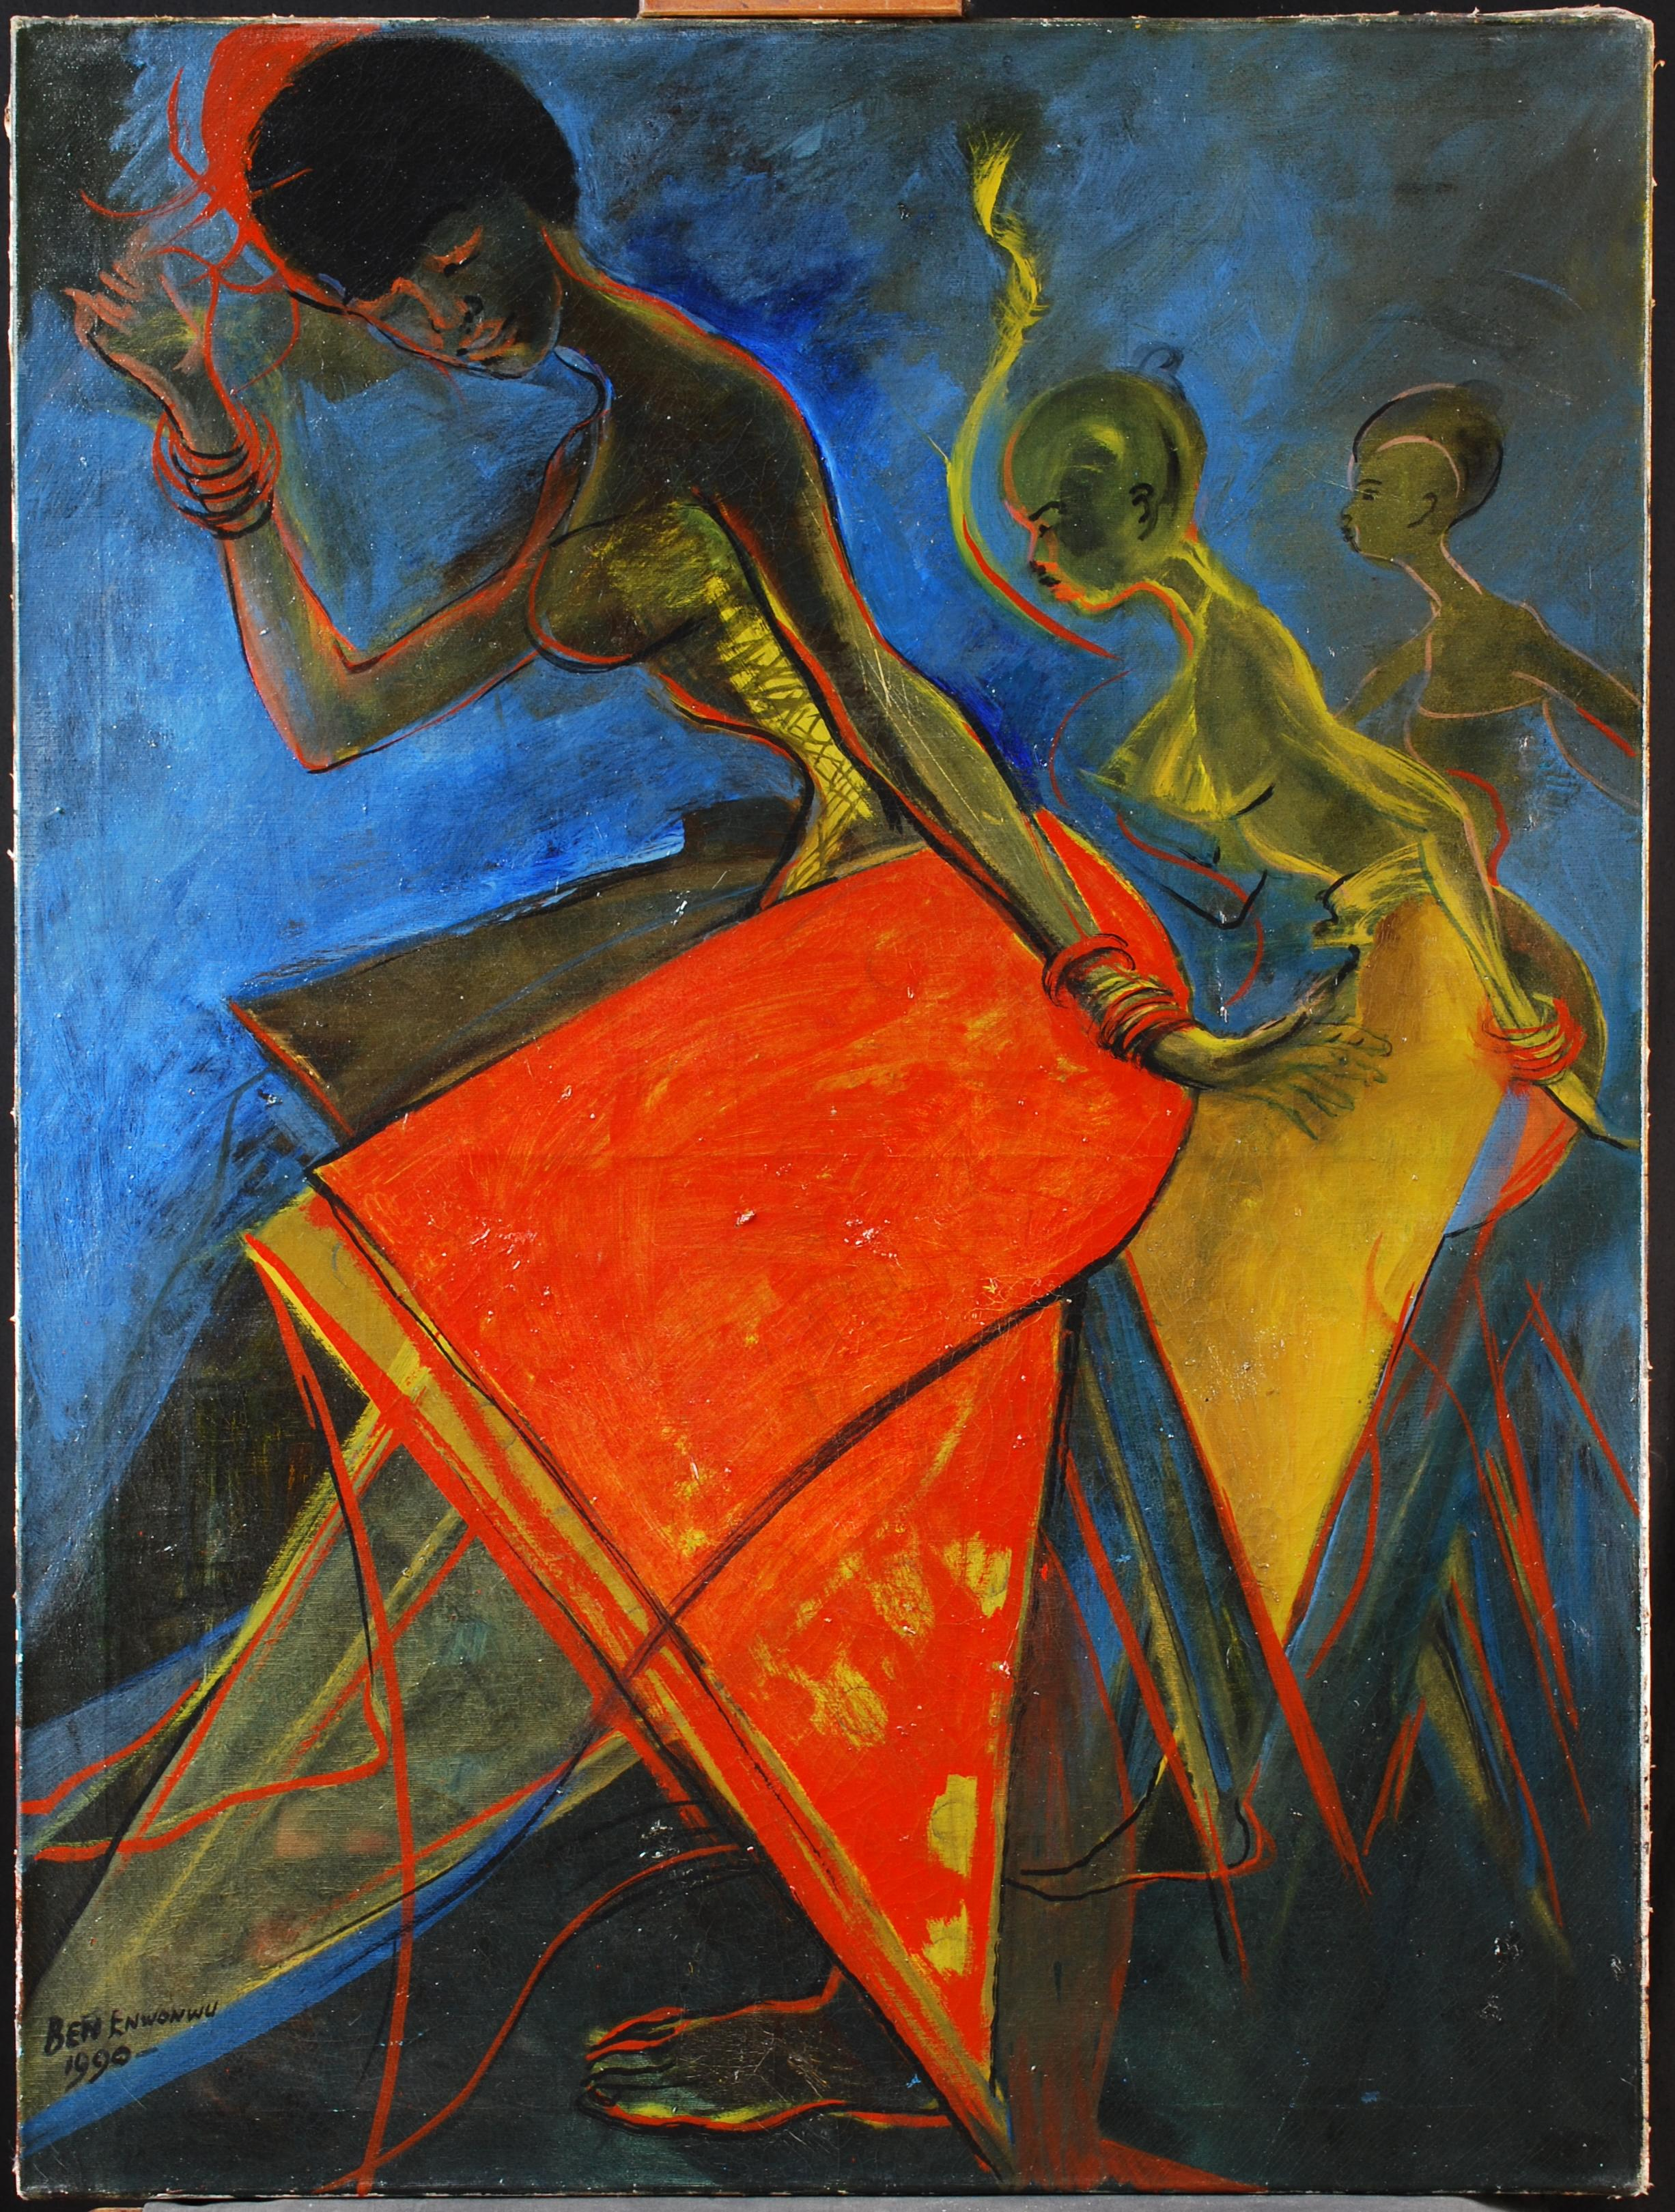 Image for May 9 Results Post_Ben Enwonwu_Obitun Dancers_1990